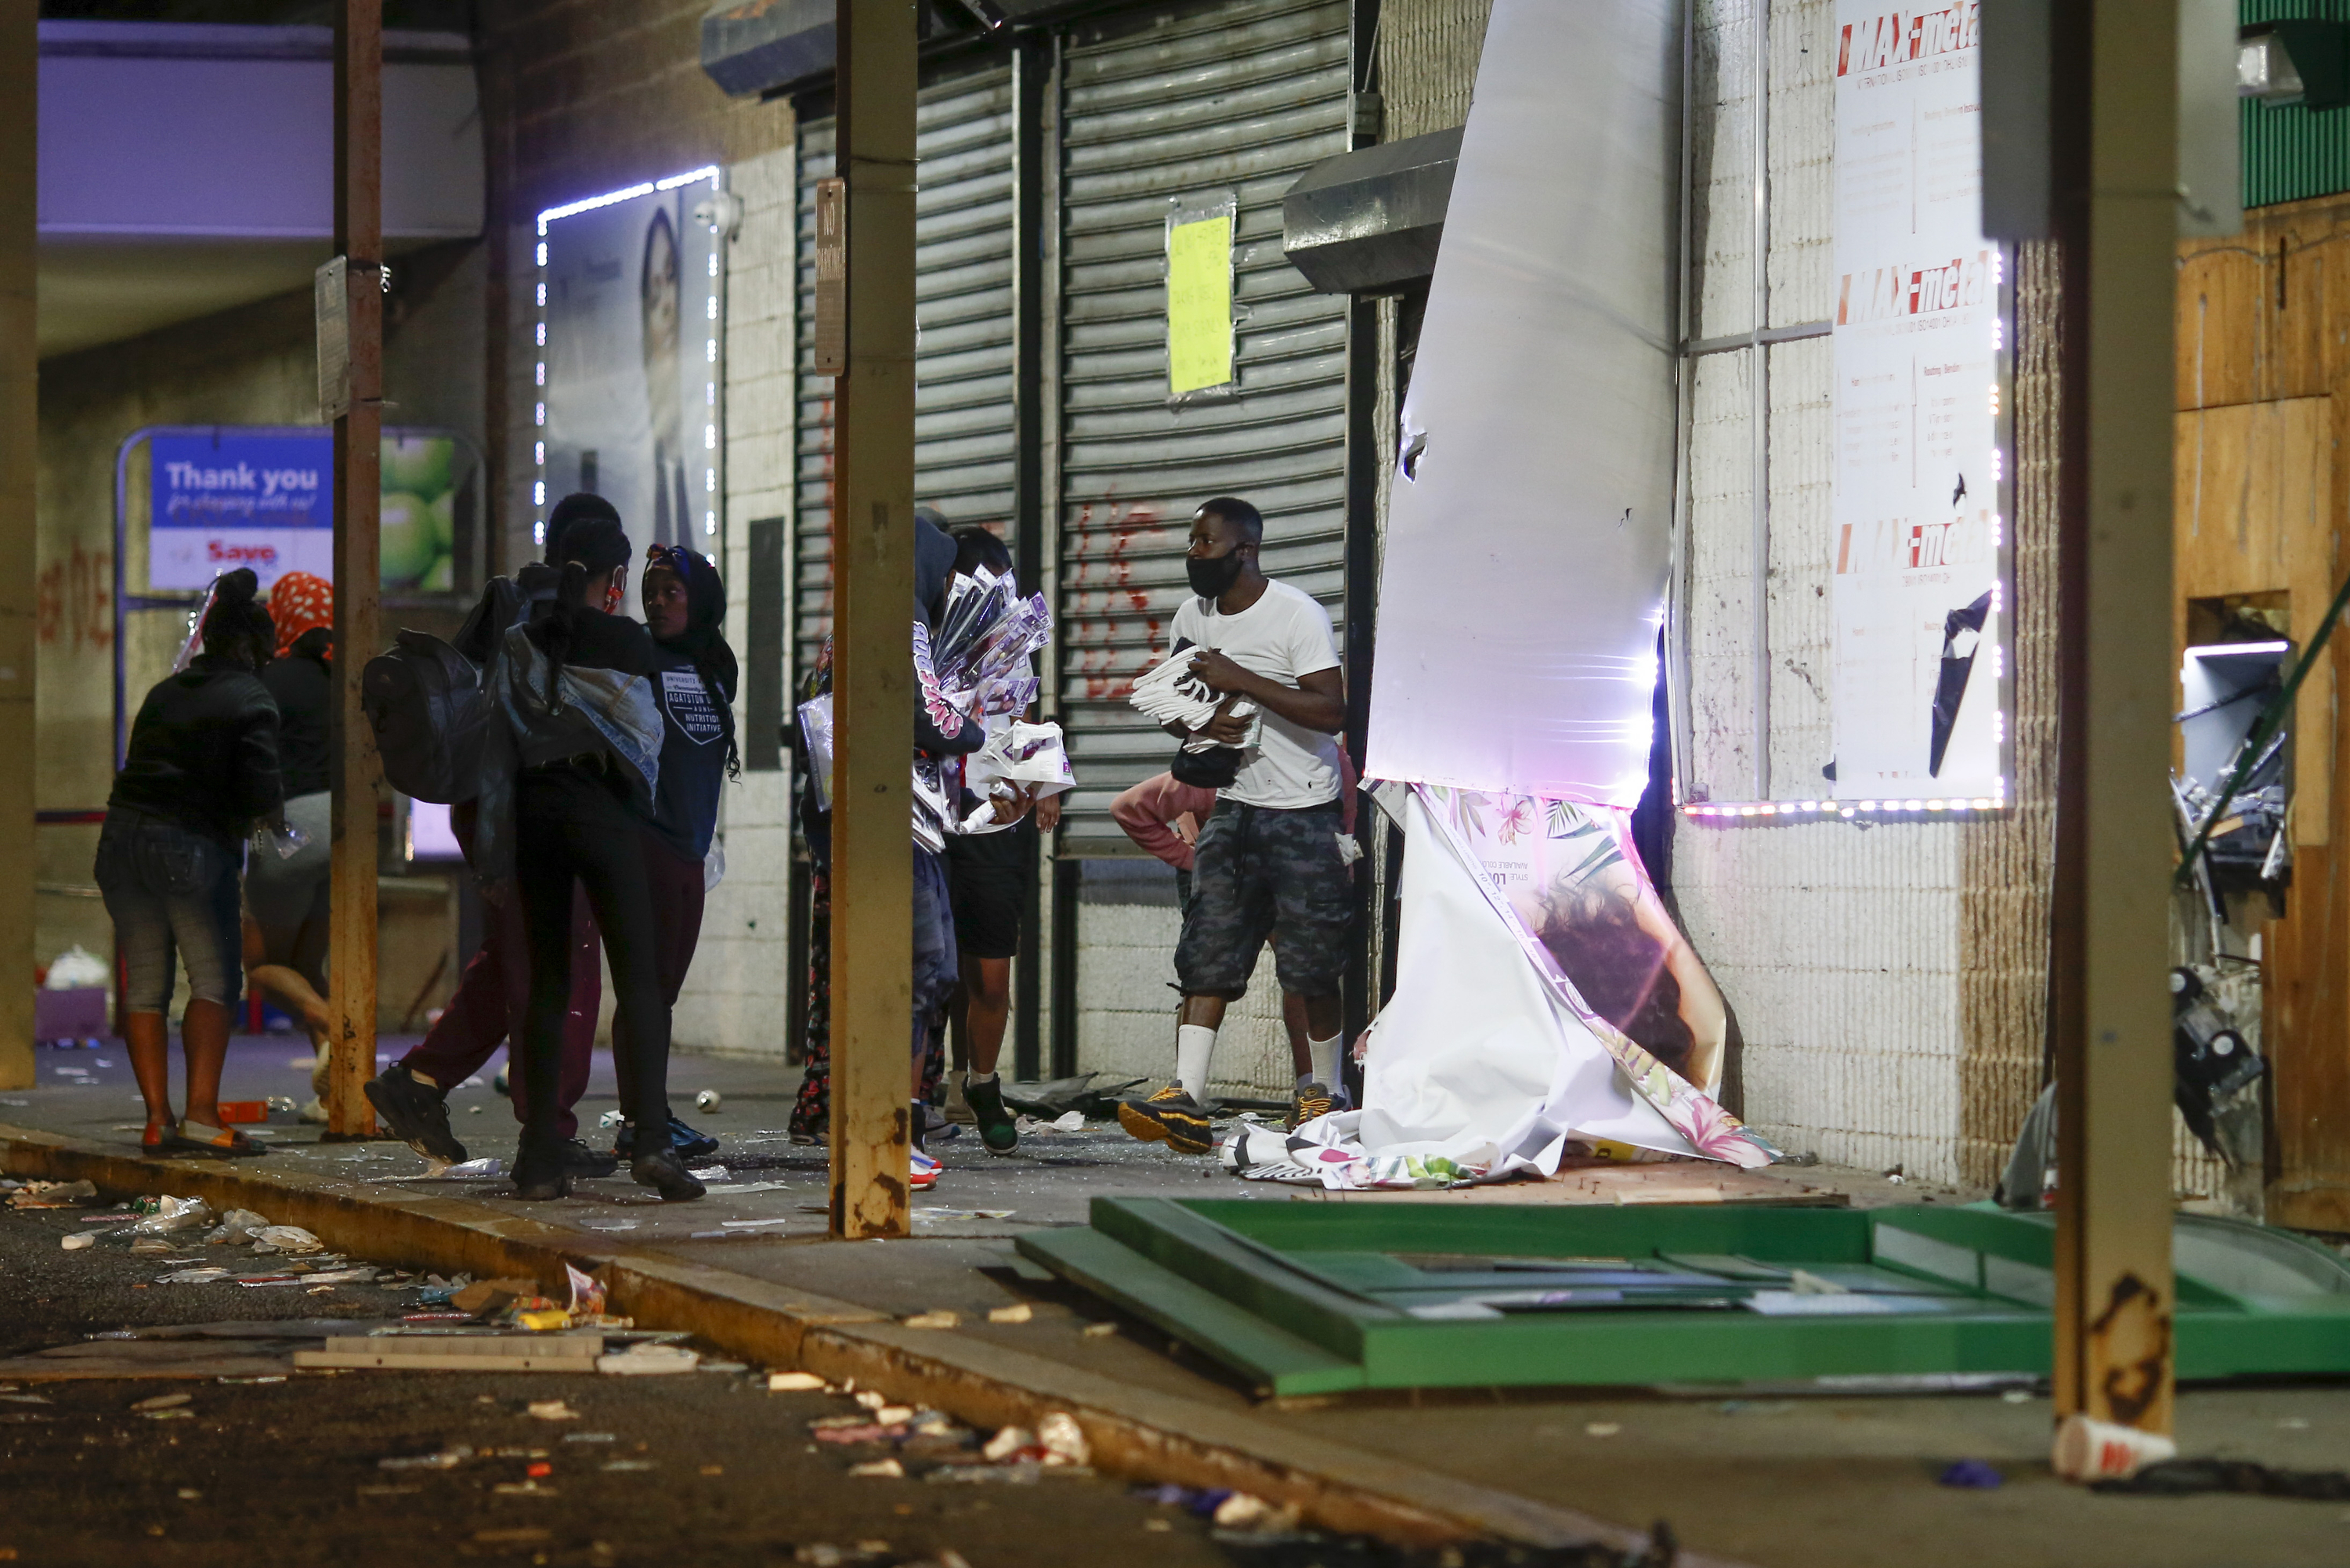 People carry packages near a security barrier on a window at a store in Philadelphia Sunday, May 31, as people protest over the death of George Floyd, a black man who was in police custody in Minneapolis. Floyd died after being restrained by Minneapolis police officers on Memorial Day, May 25. (AP Photo/Matt Slocum)